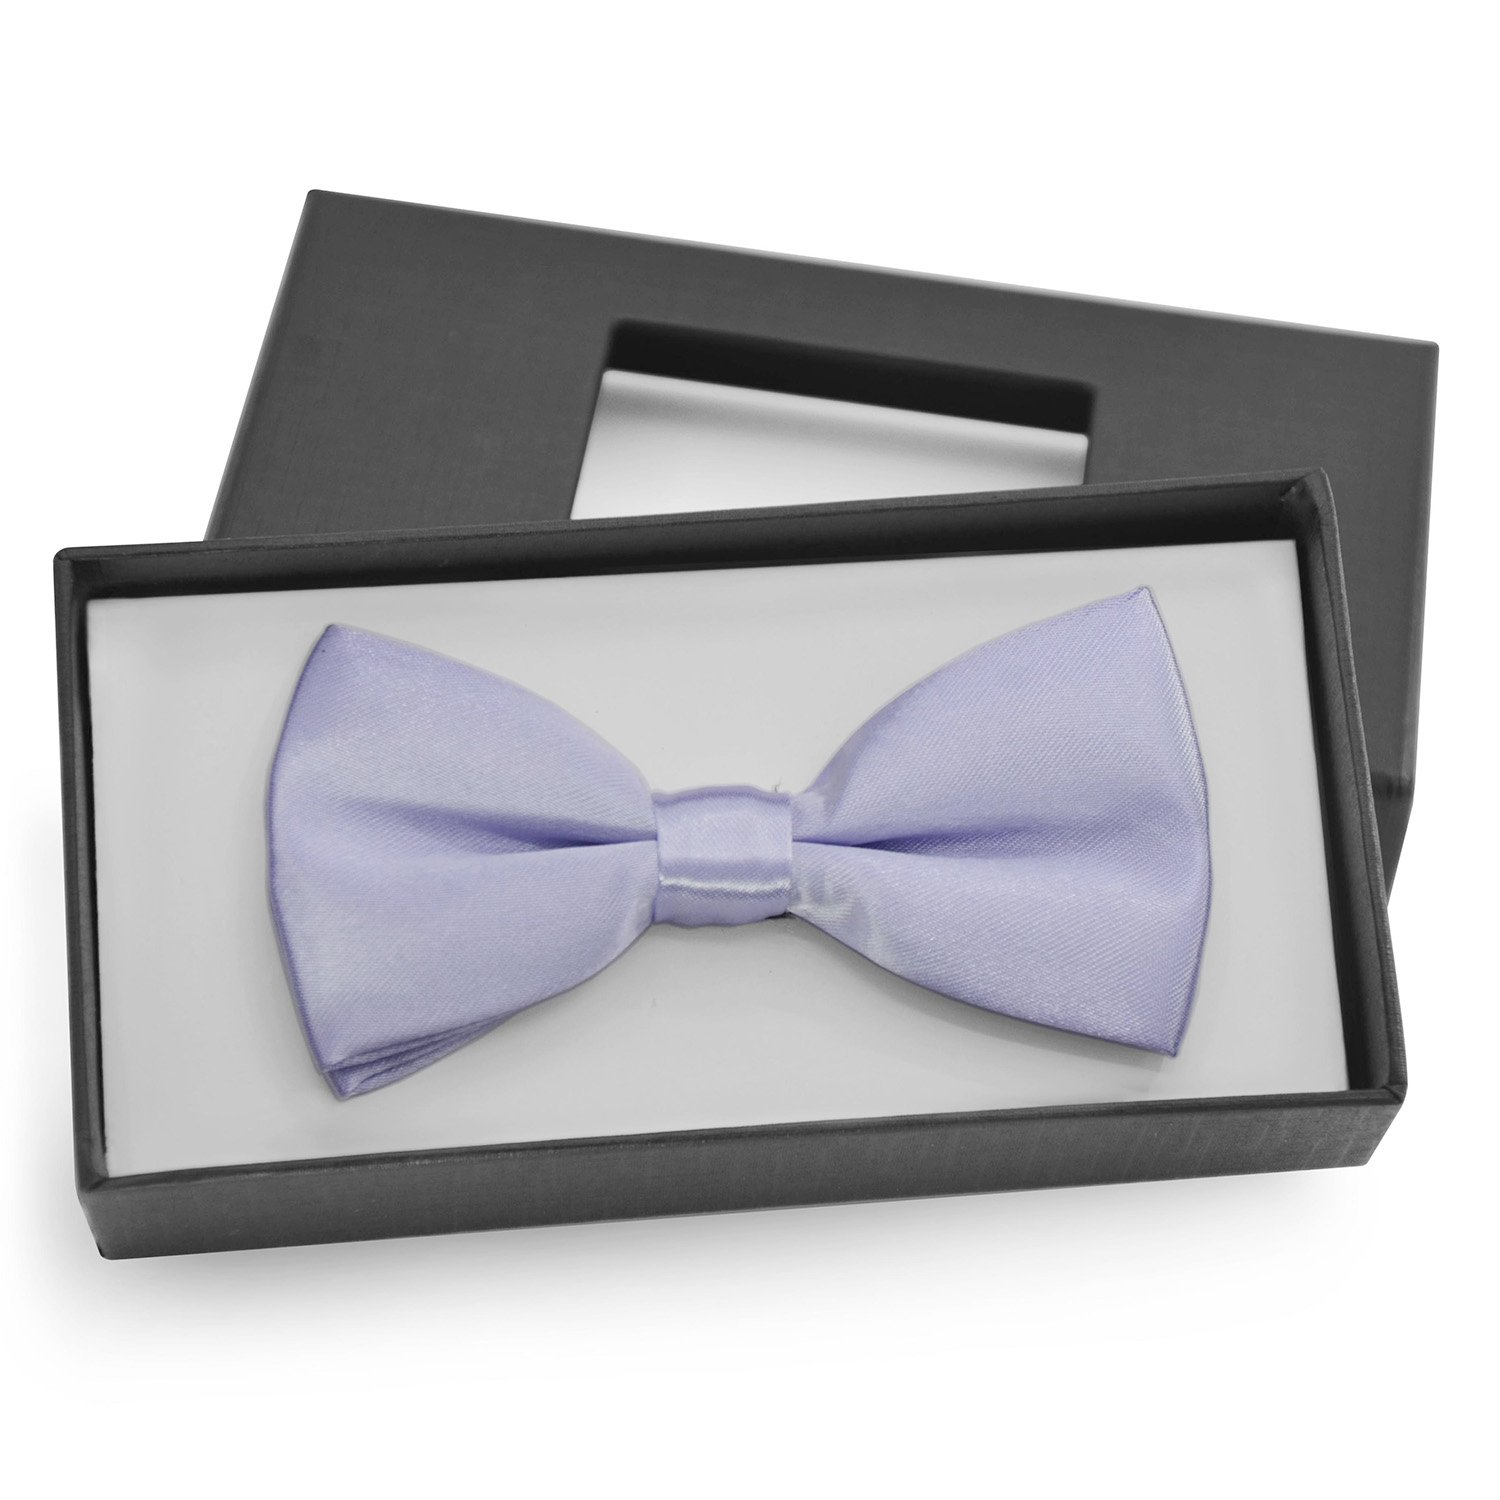 Brooben Boys Kids Bowtie Pre tied Banded Satin Adjustable Bow Tie BT1 Dark Navy BT1-DarkNavy